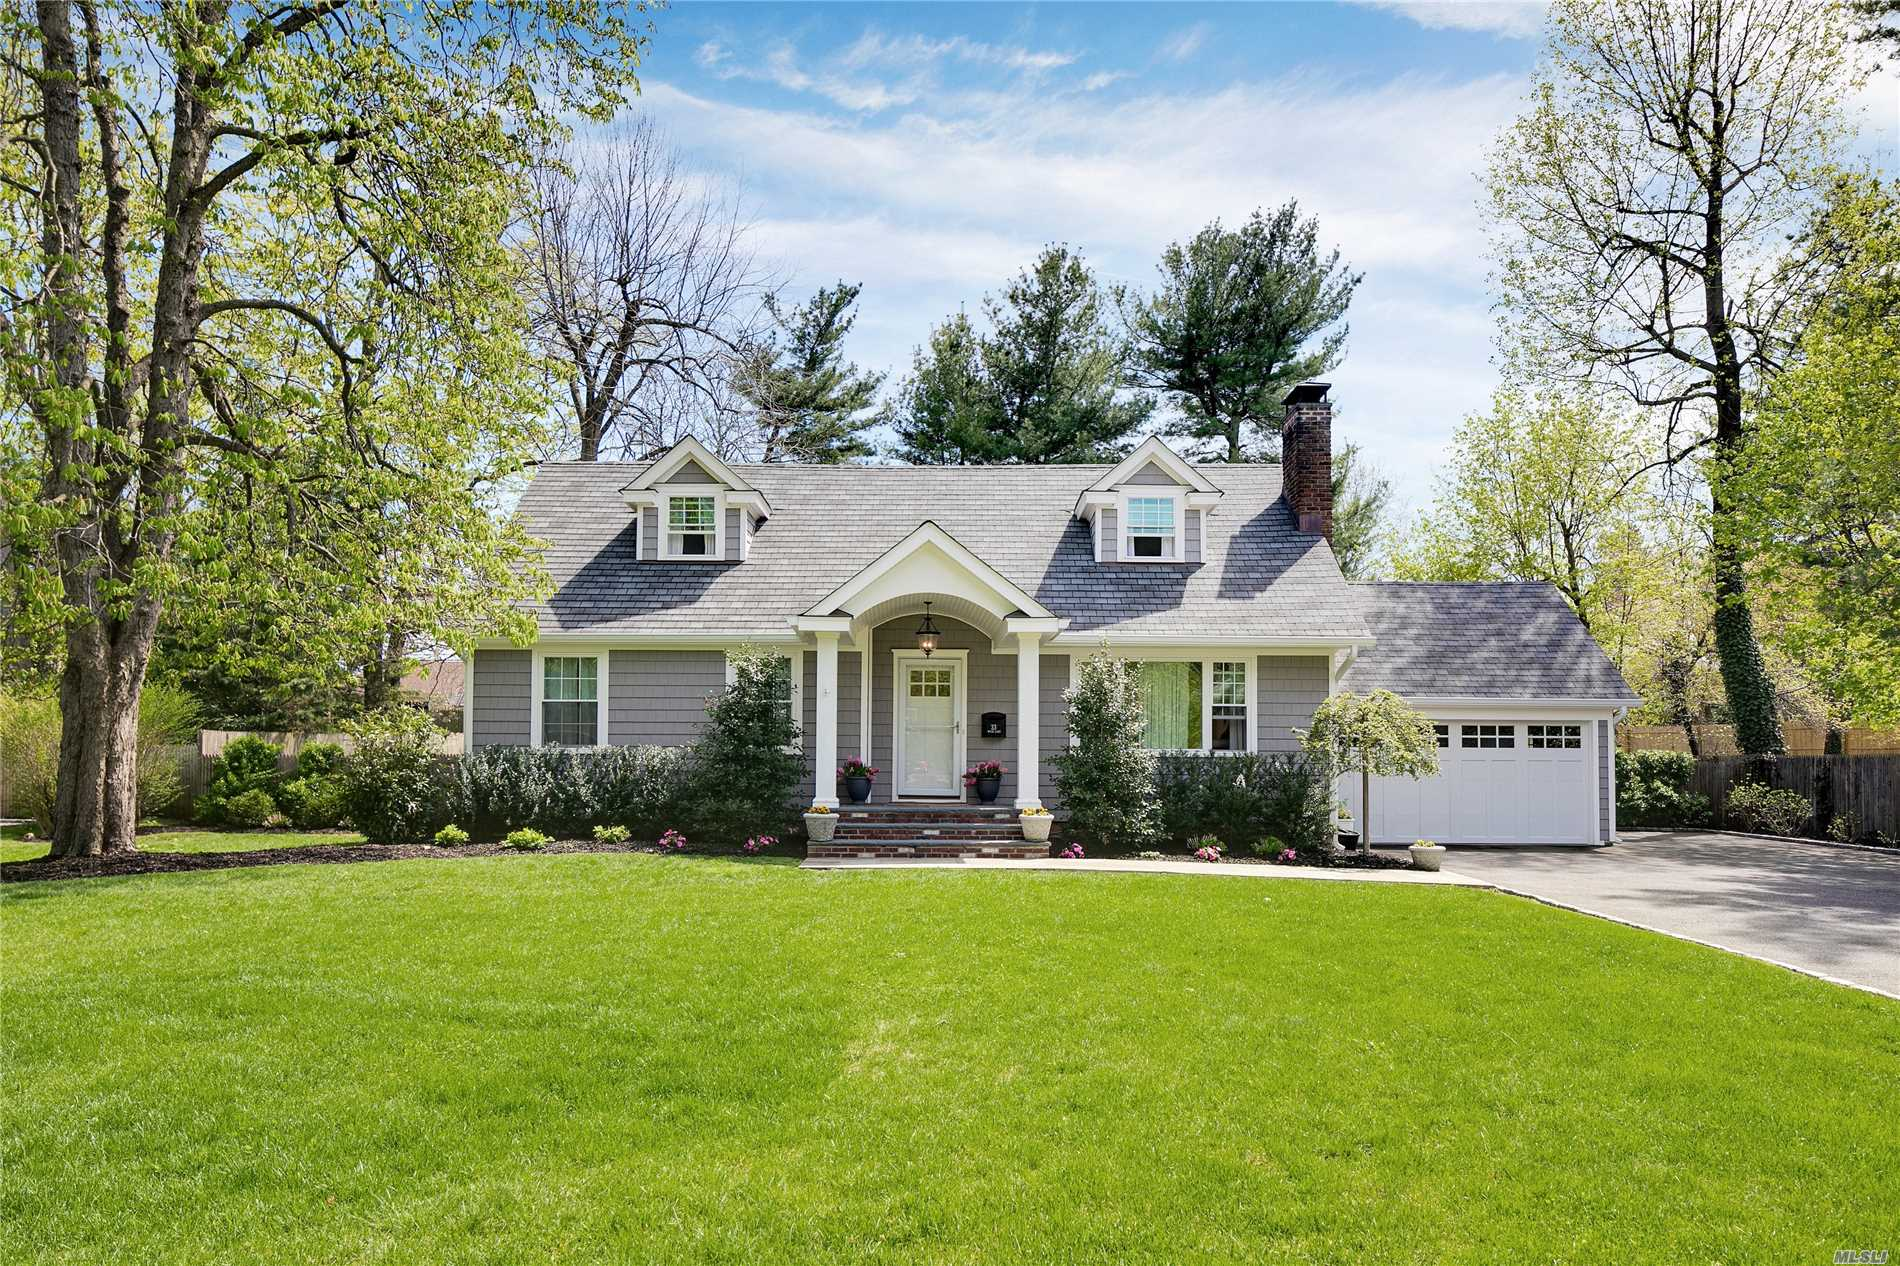 Picture perfect Lattingtown farm ranch in a mid-block location. Beautiful and newly renovated, turn key with new kitchen, living room with fireplace, and master bedroom on the first floor. Finished basement with gym, recreation room, full bath and laundry.